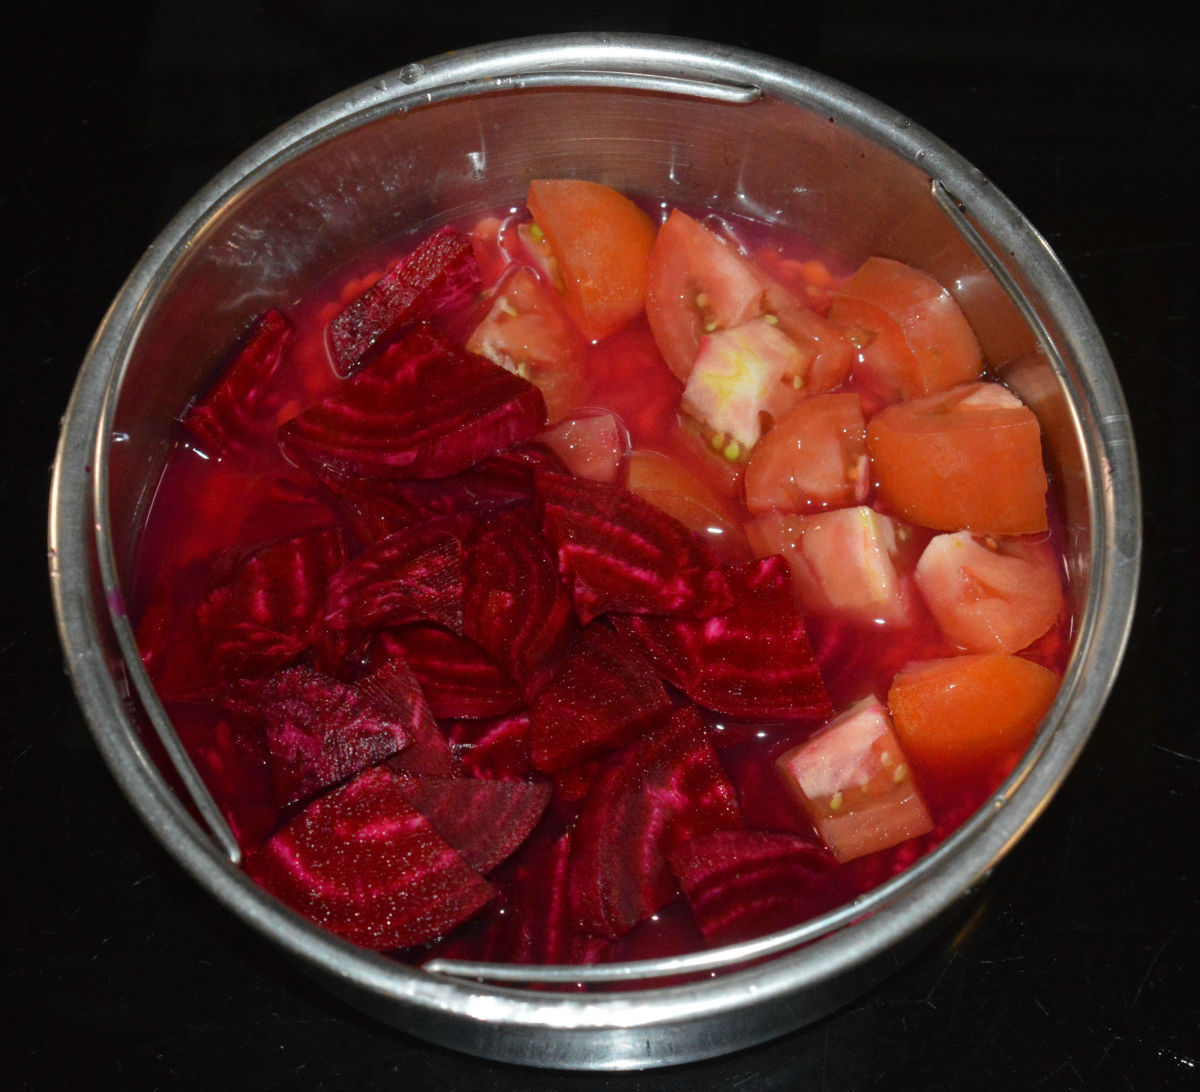 Step one: Add thinly chopped beetroot, chopped tomatoes, and washed split pigeon peas to a container. Add 1/2 cup of water. Place it in the pressure cooker. Cook it up to 4 whistles and simmer for 5 minutes. Turn off the heat.